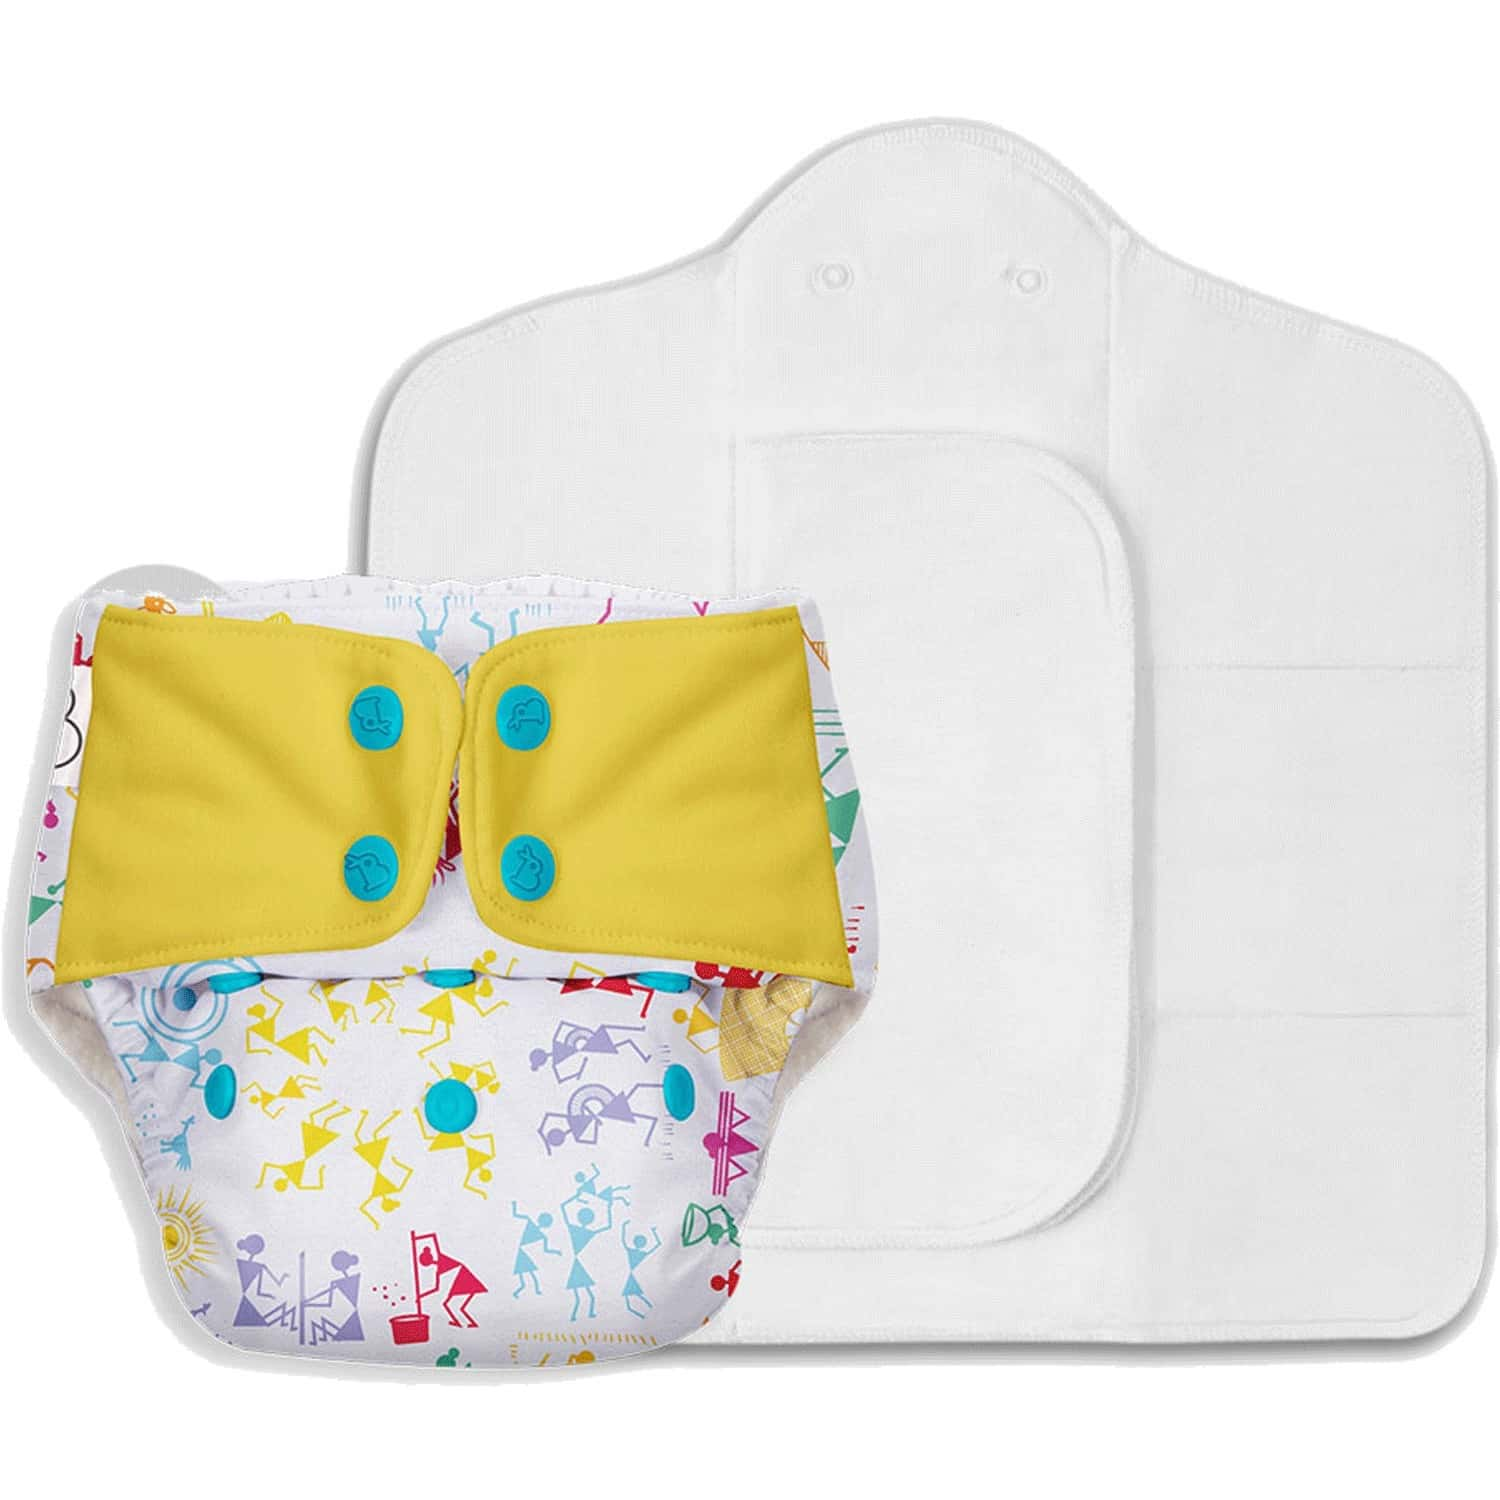 Superbottoms Freesize Uno - Reusable Cloth Diaper With Dry Feel Pads Set - White Warli